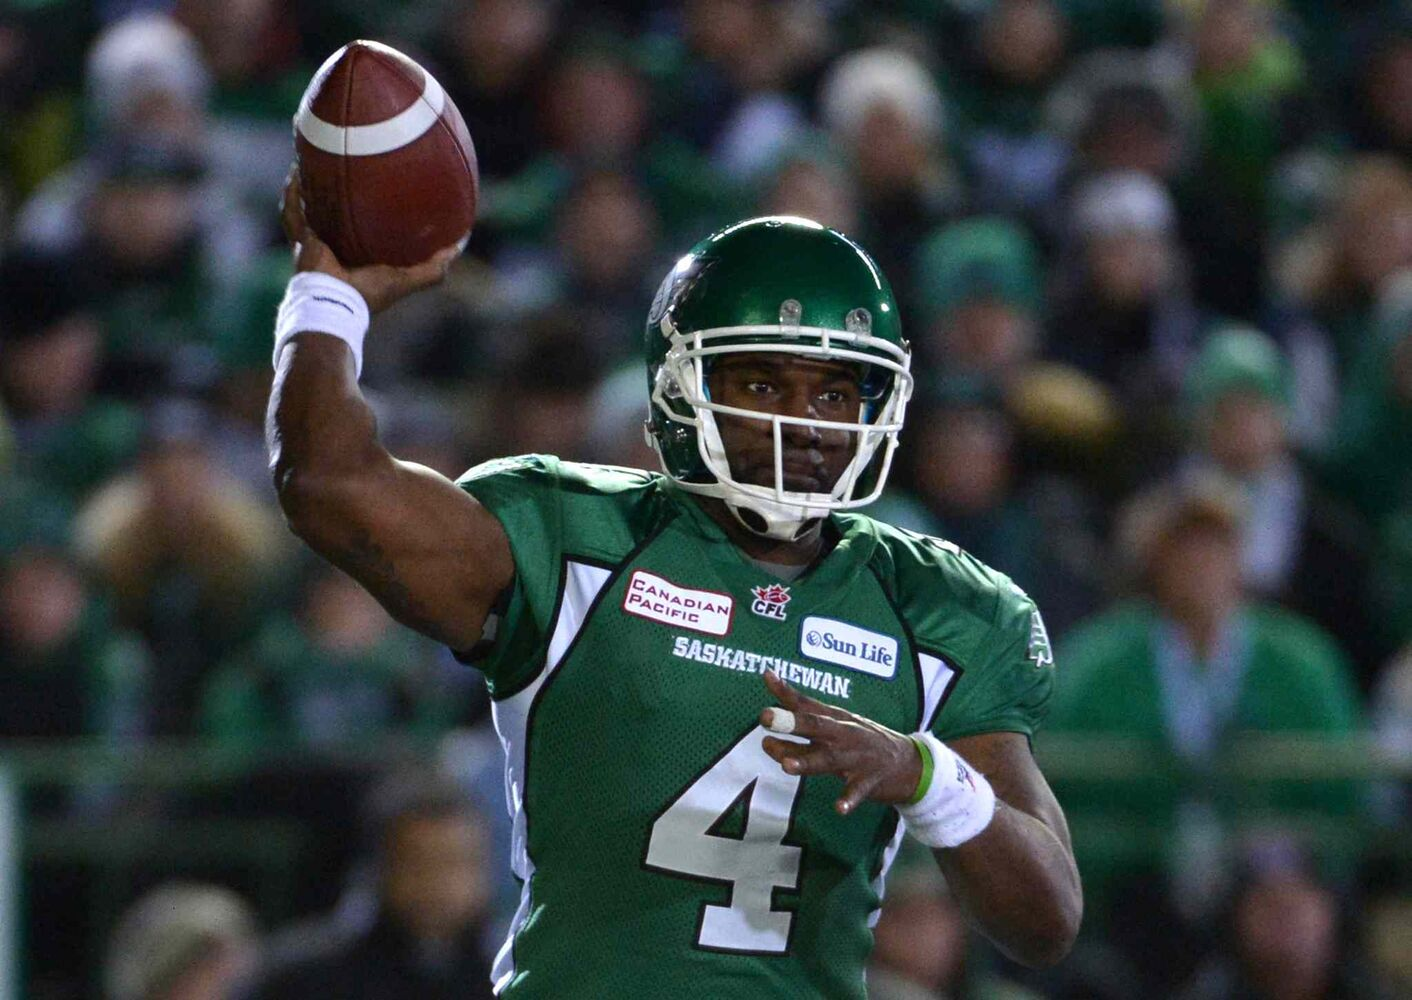 Saskatchewan Roughriders quarterback Darian Durant fires a pass during the first quarter. (Jonathan Hayward / The Canadian Press)